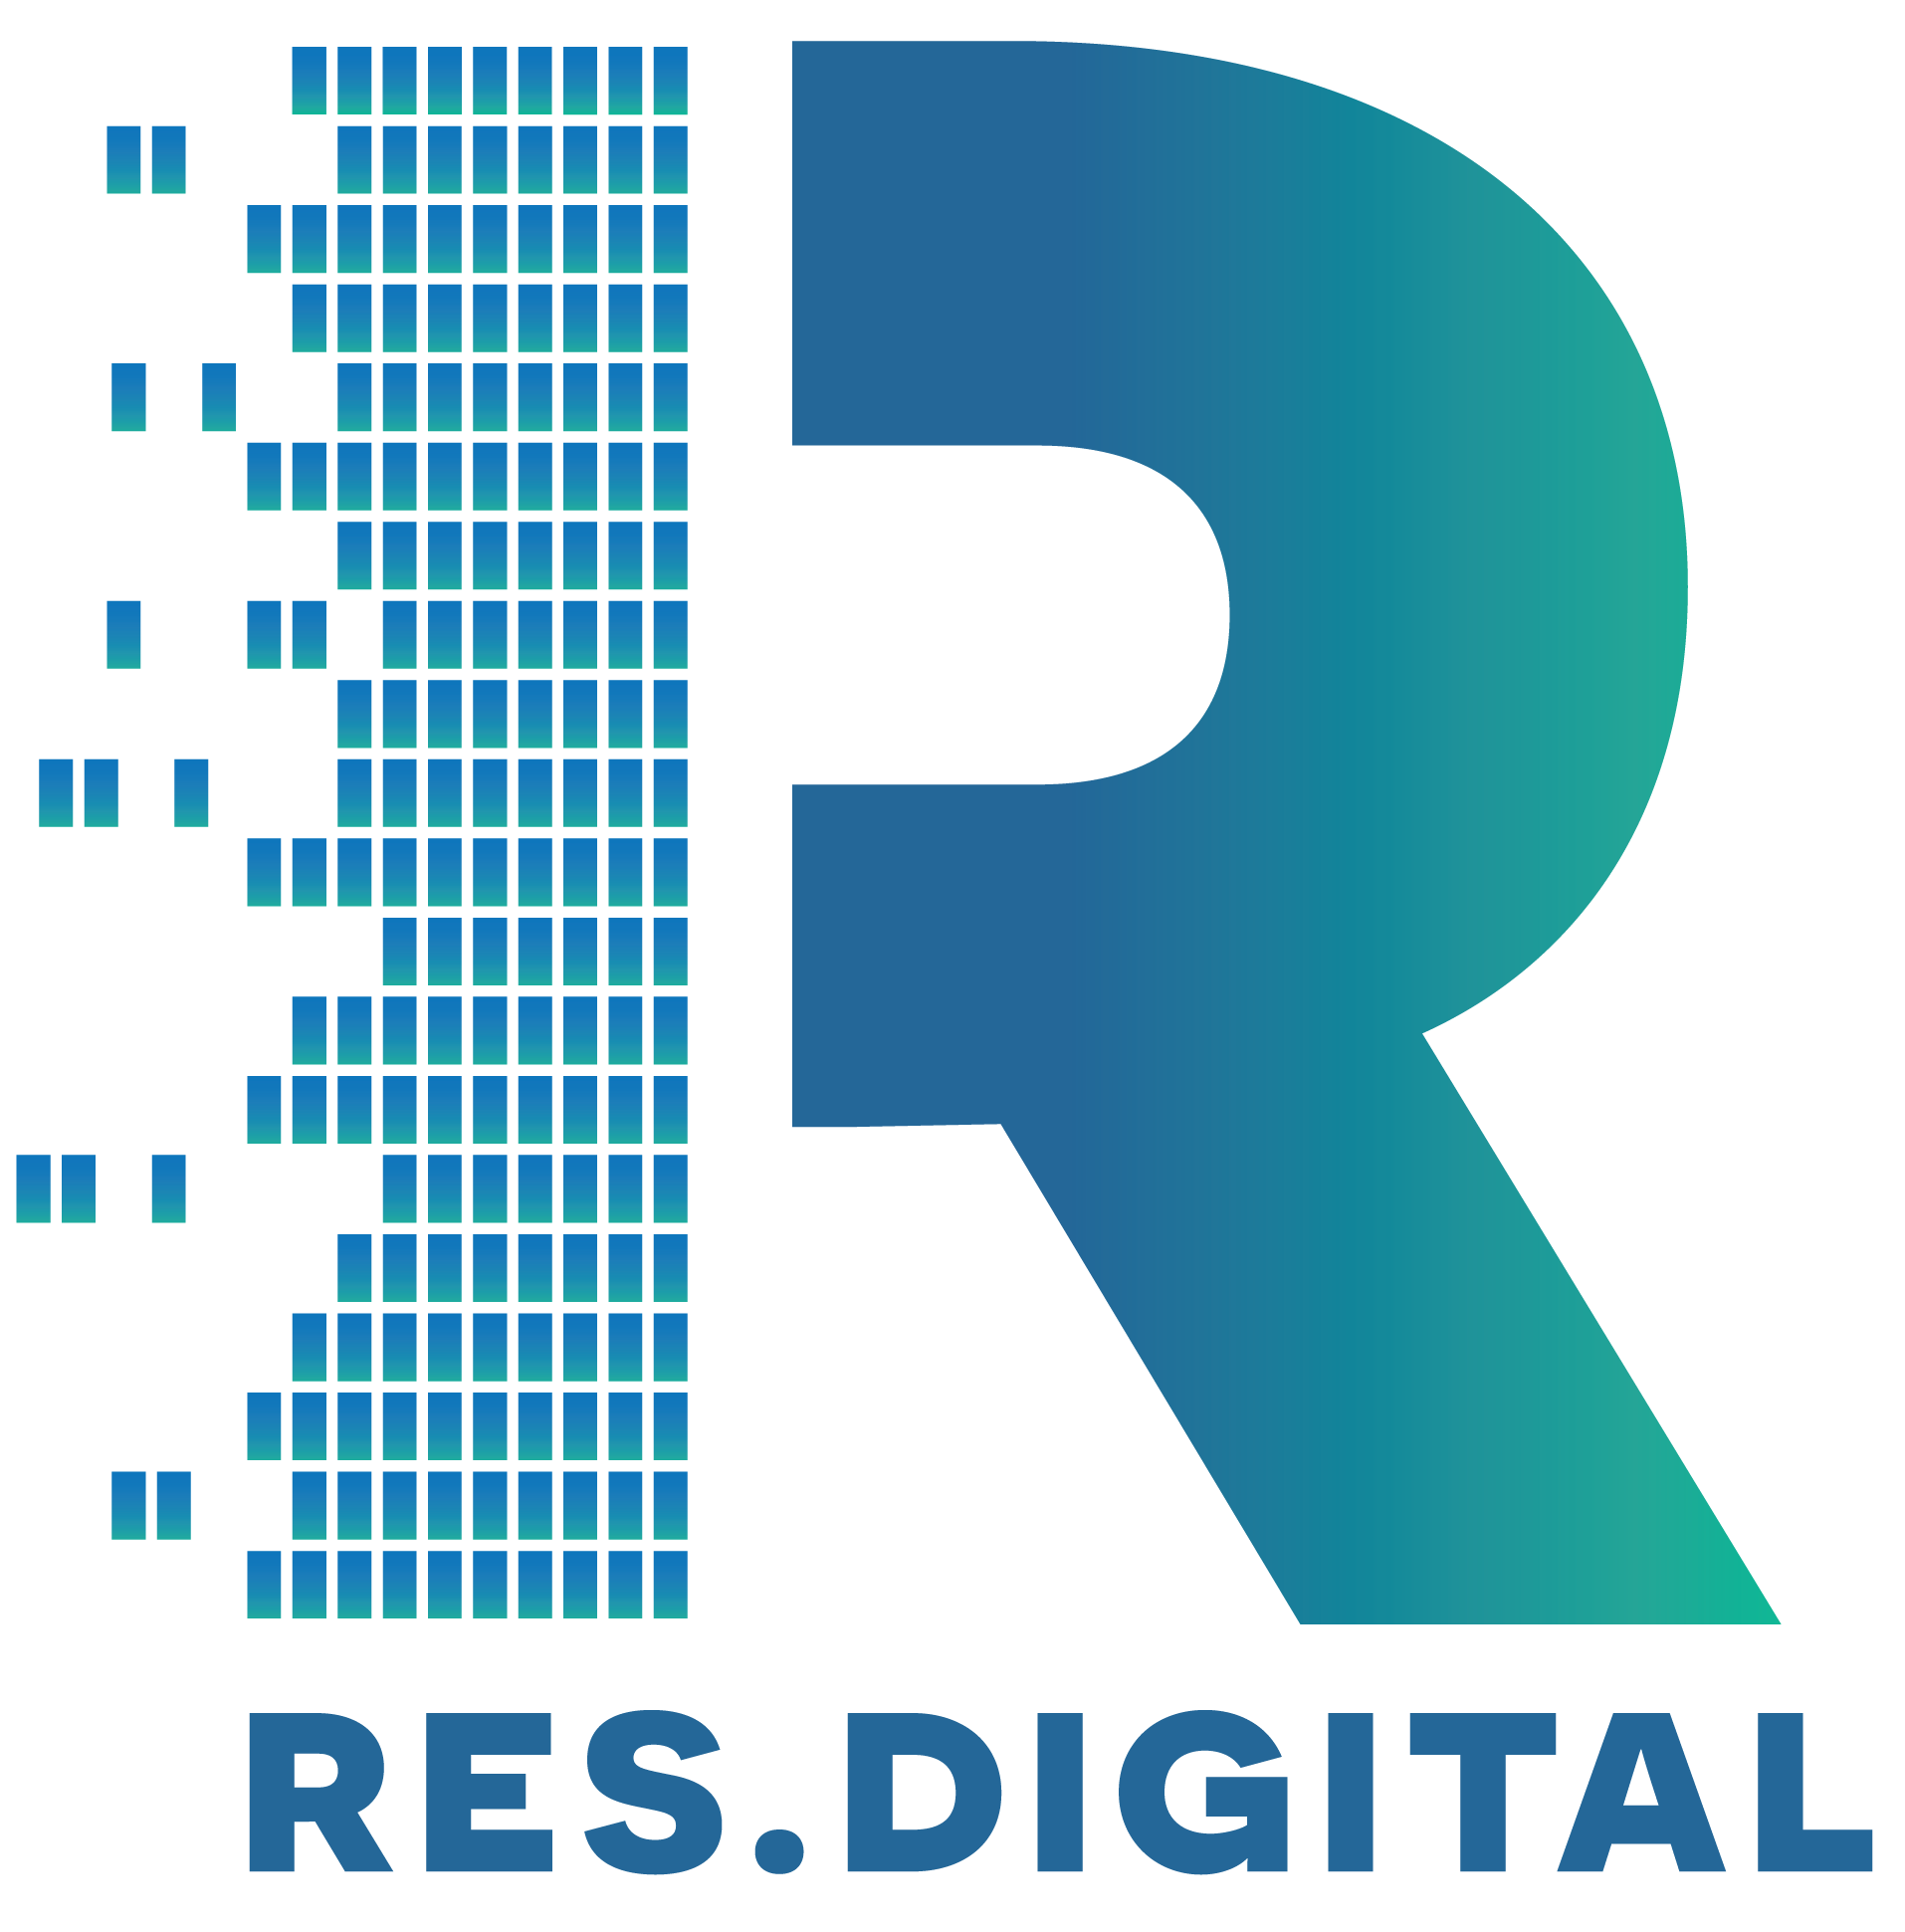 Res Digital Logo | Resolution Digital